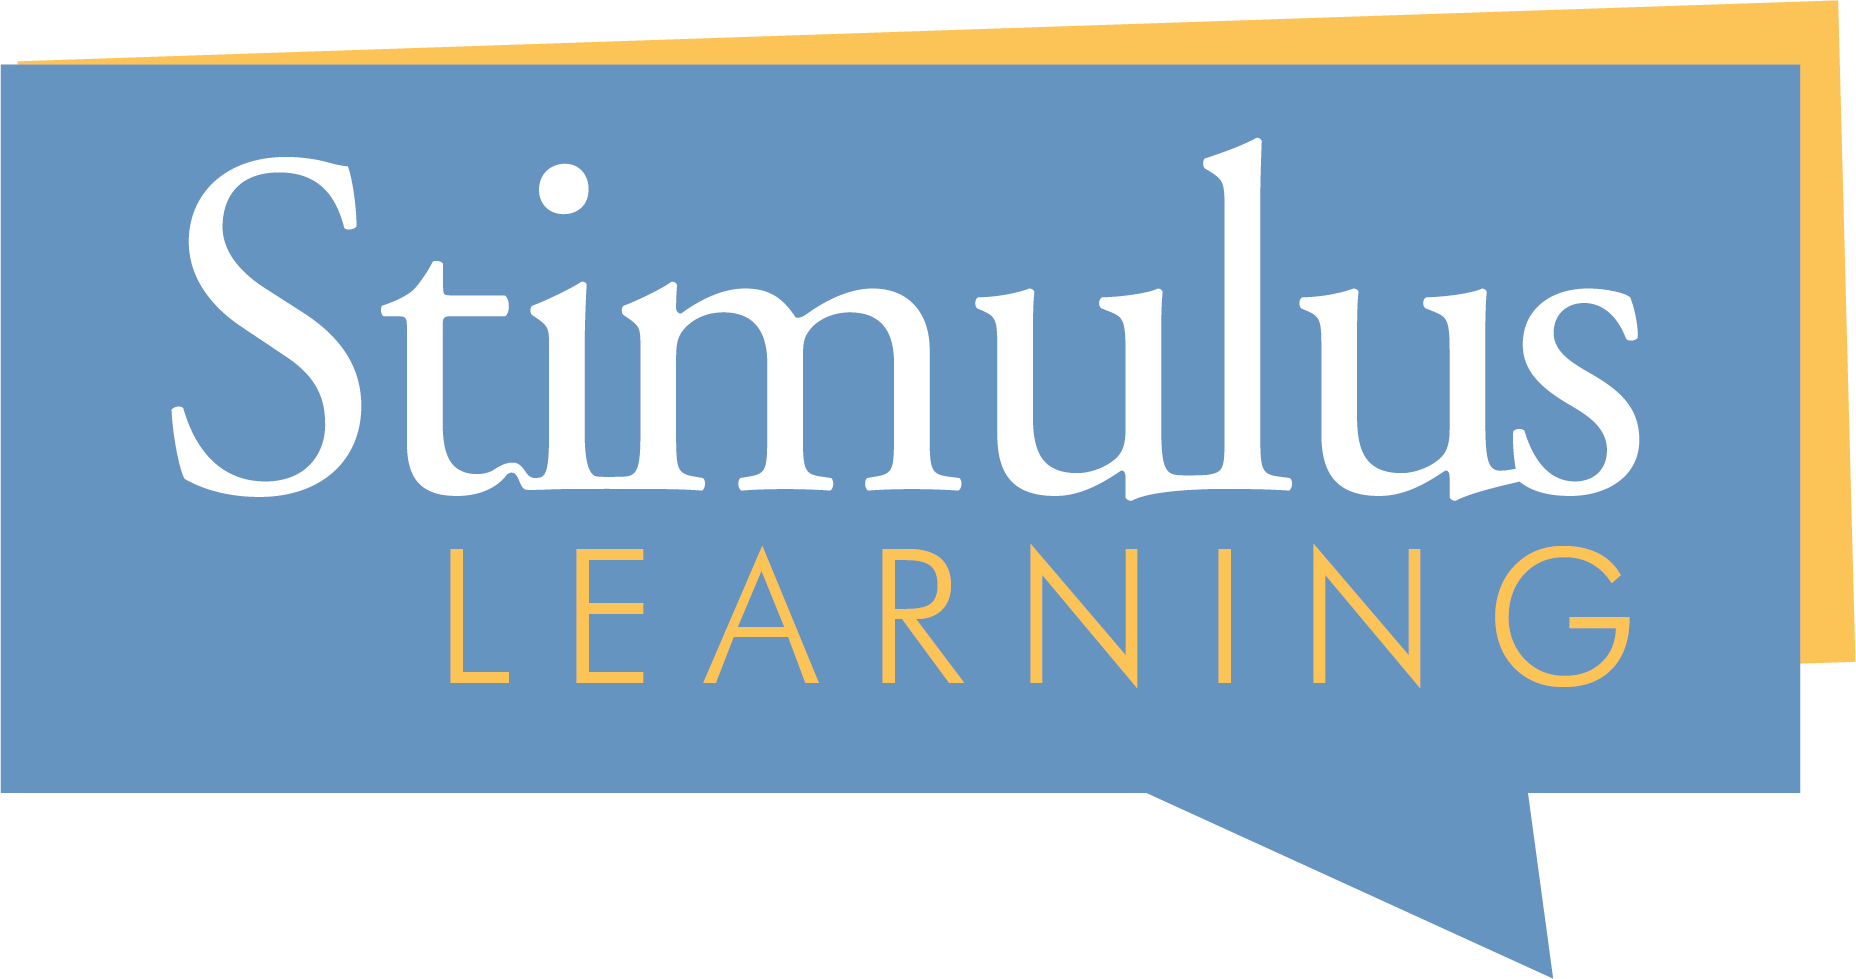 Stimulus-Learning.com